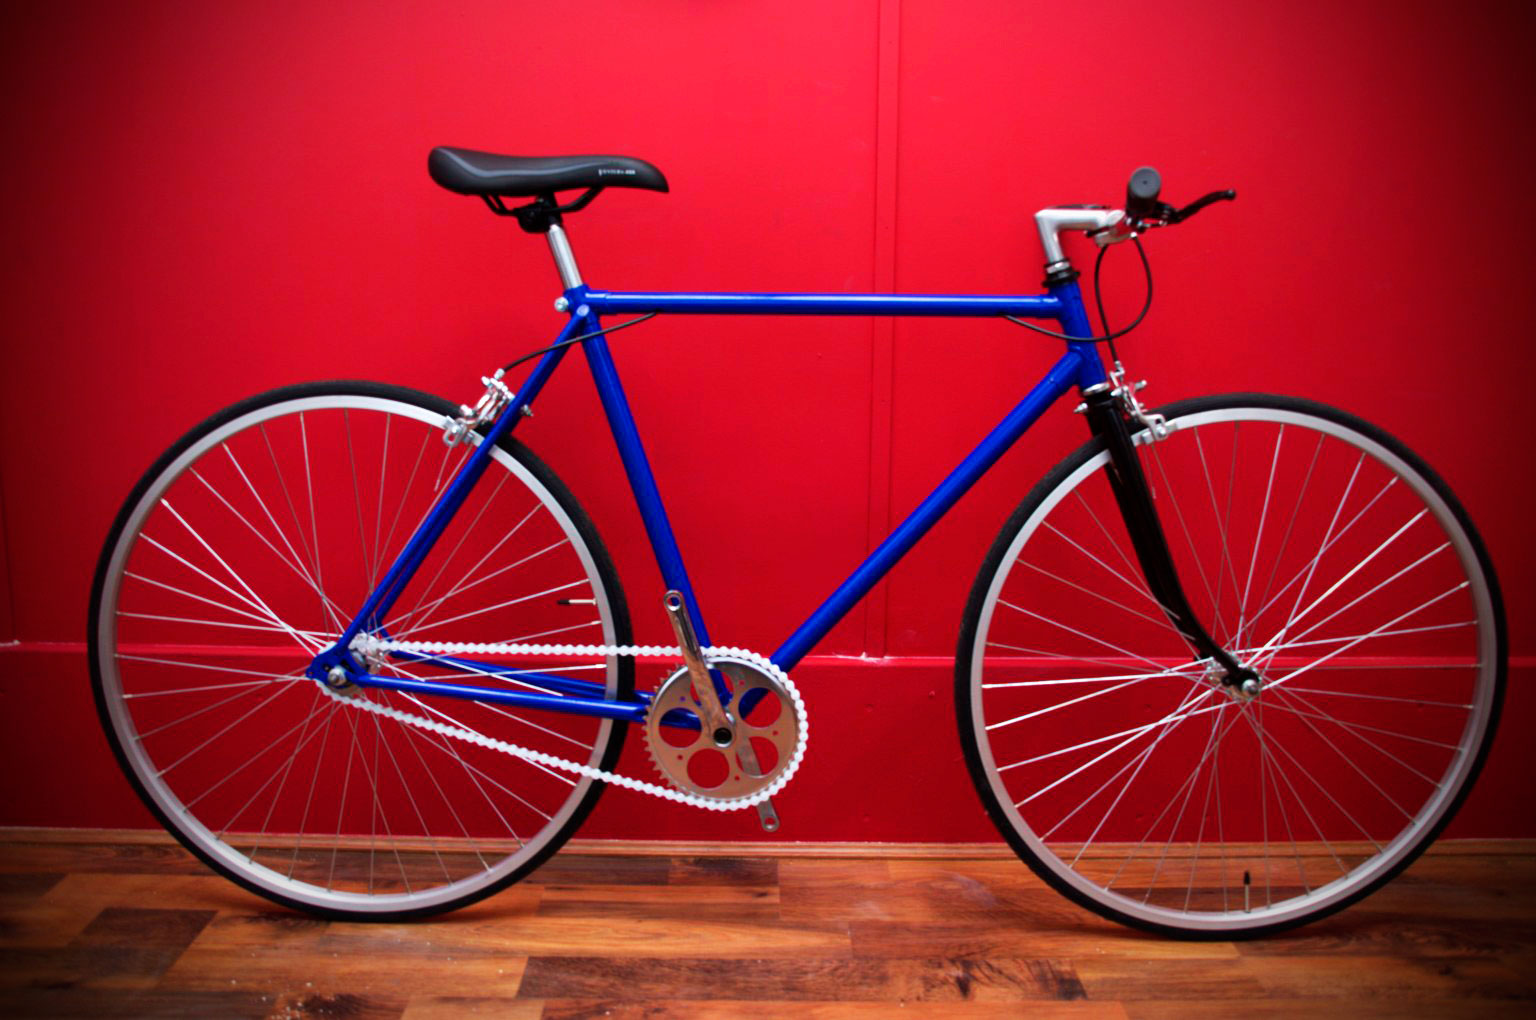 blue single speed racing bike